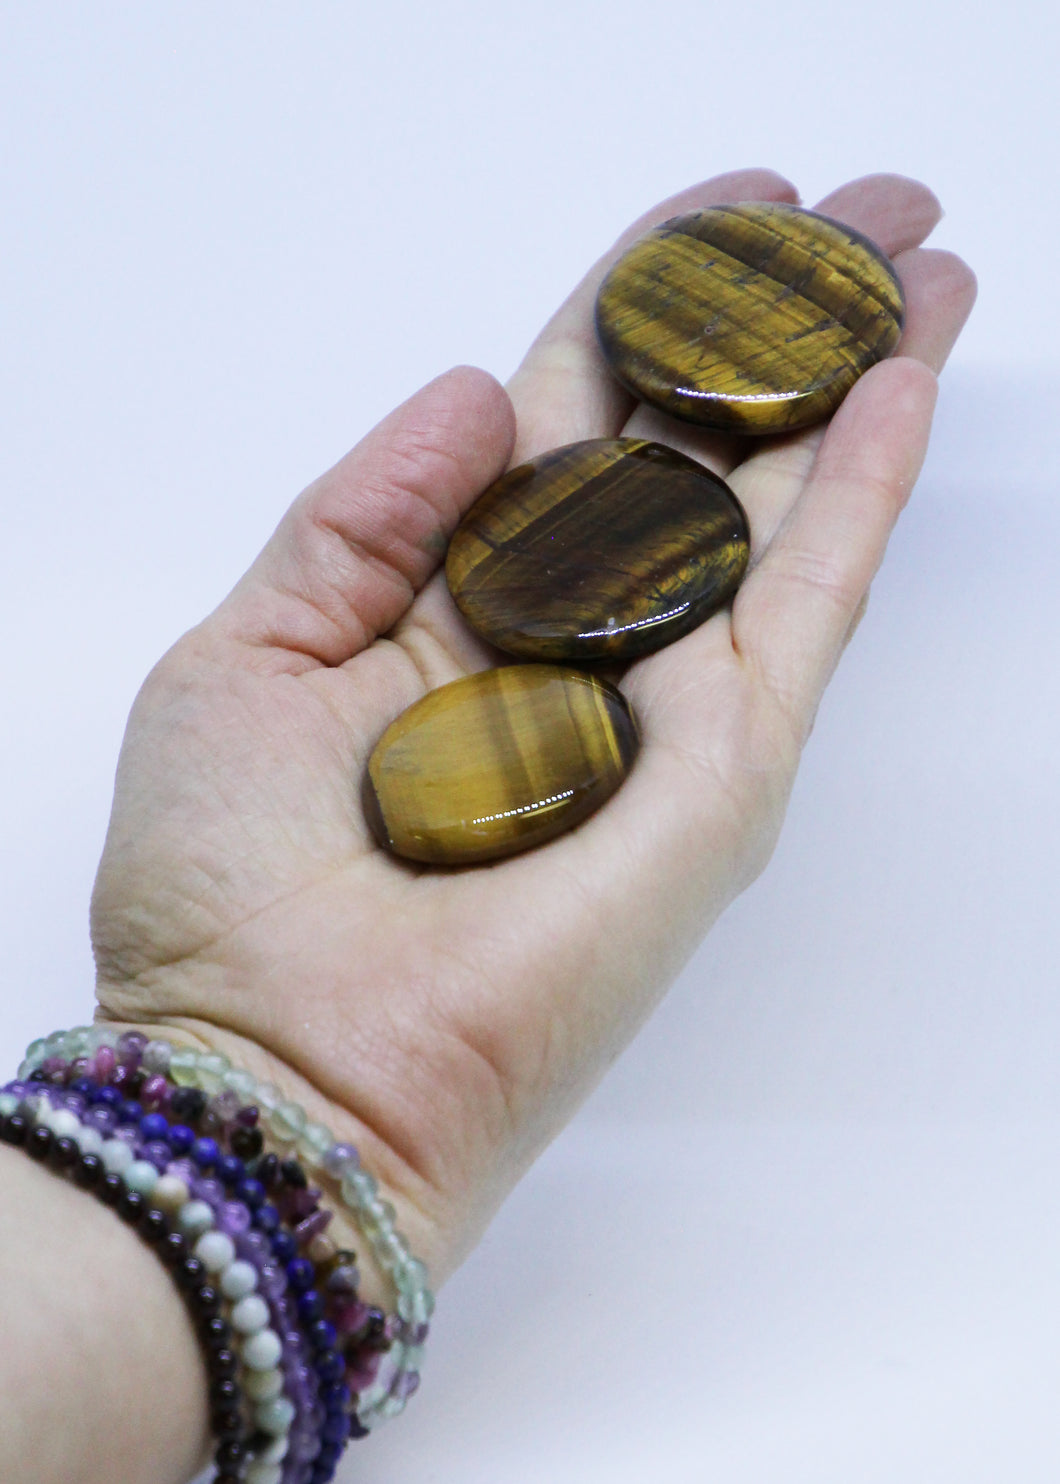 Tiger's Eye Crystal Cabinet